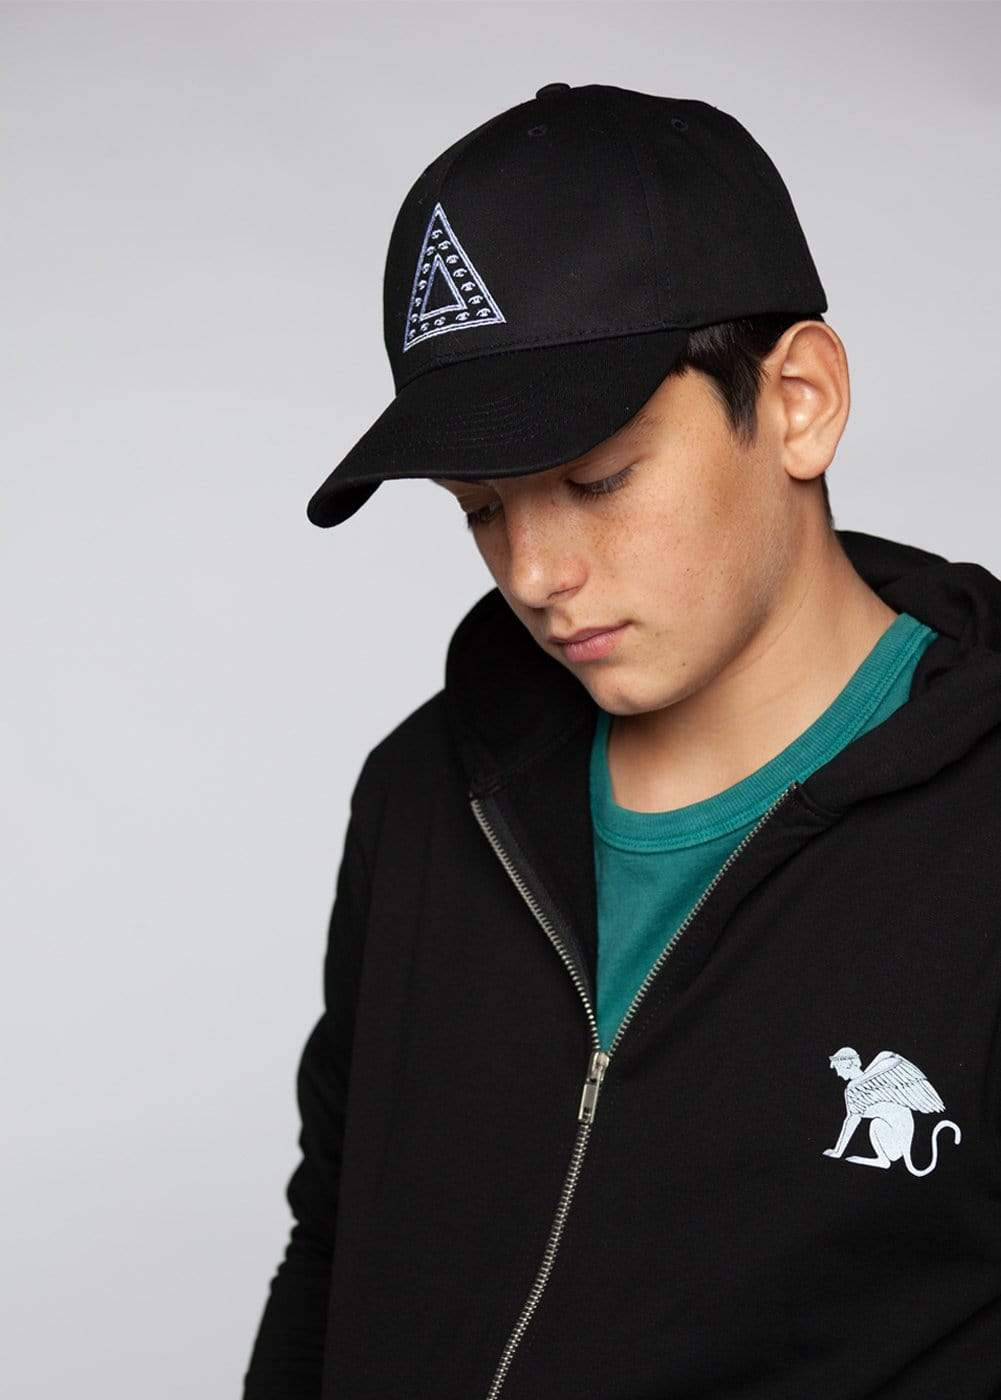 Patrick Cap Eternal Triangle-TeenzShop